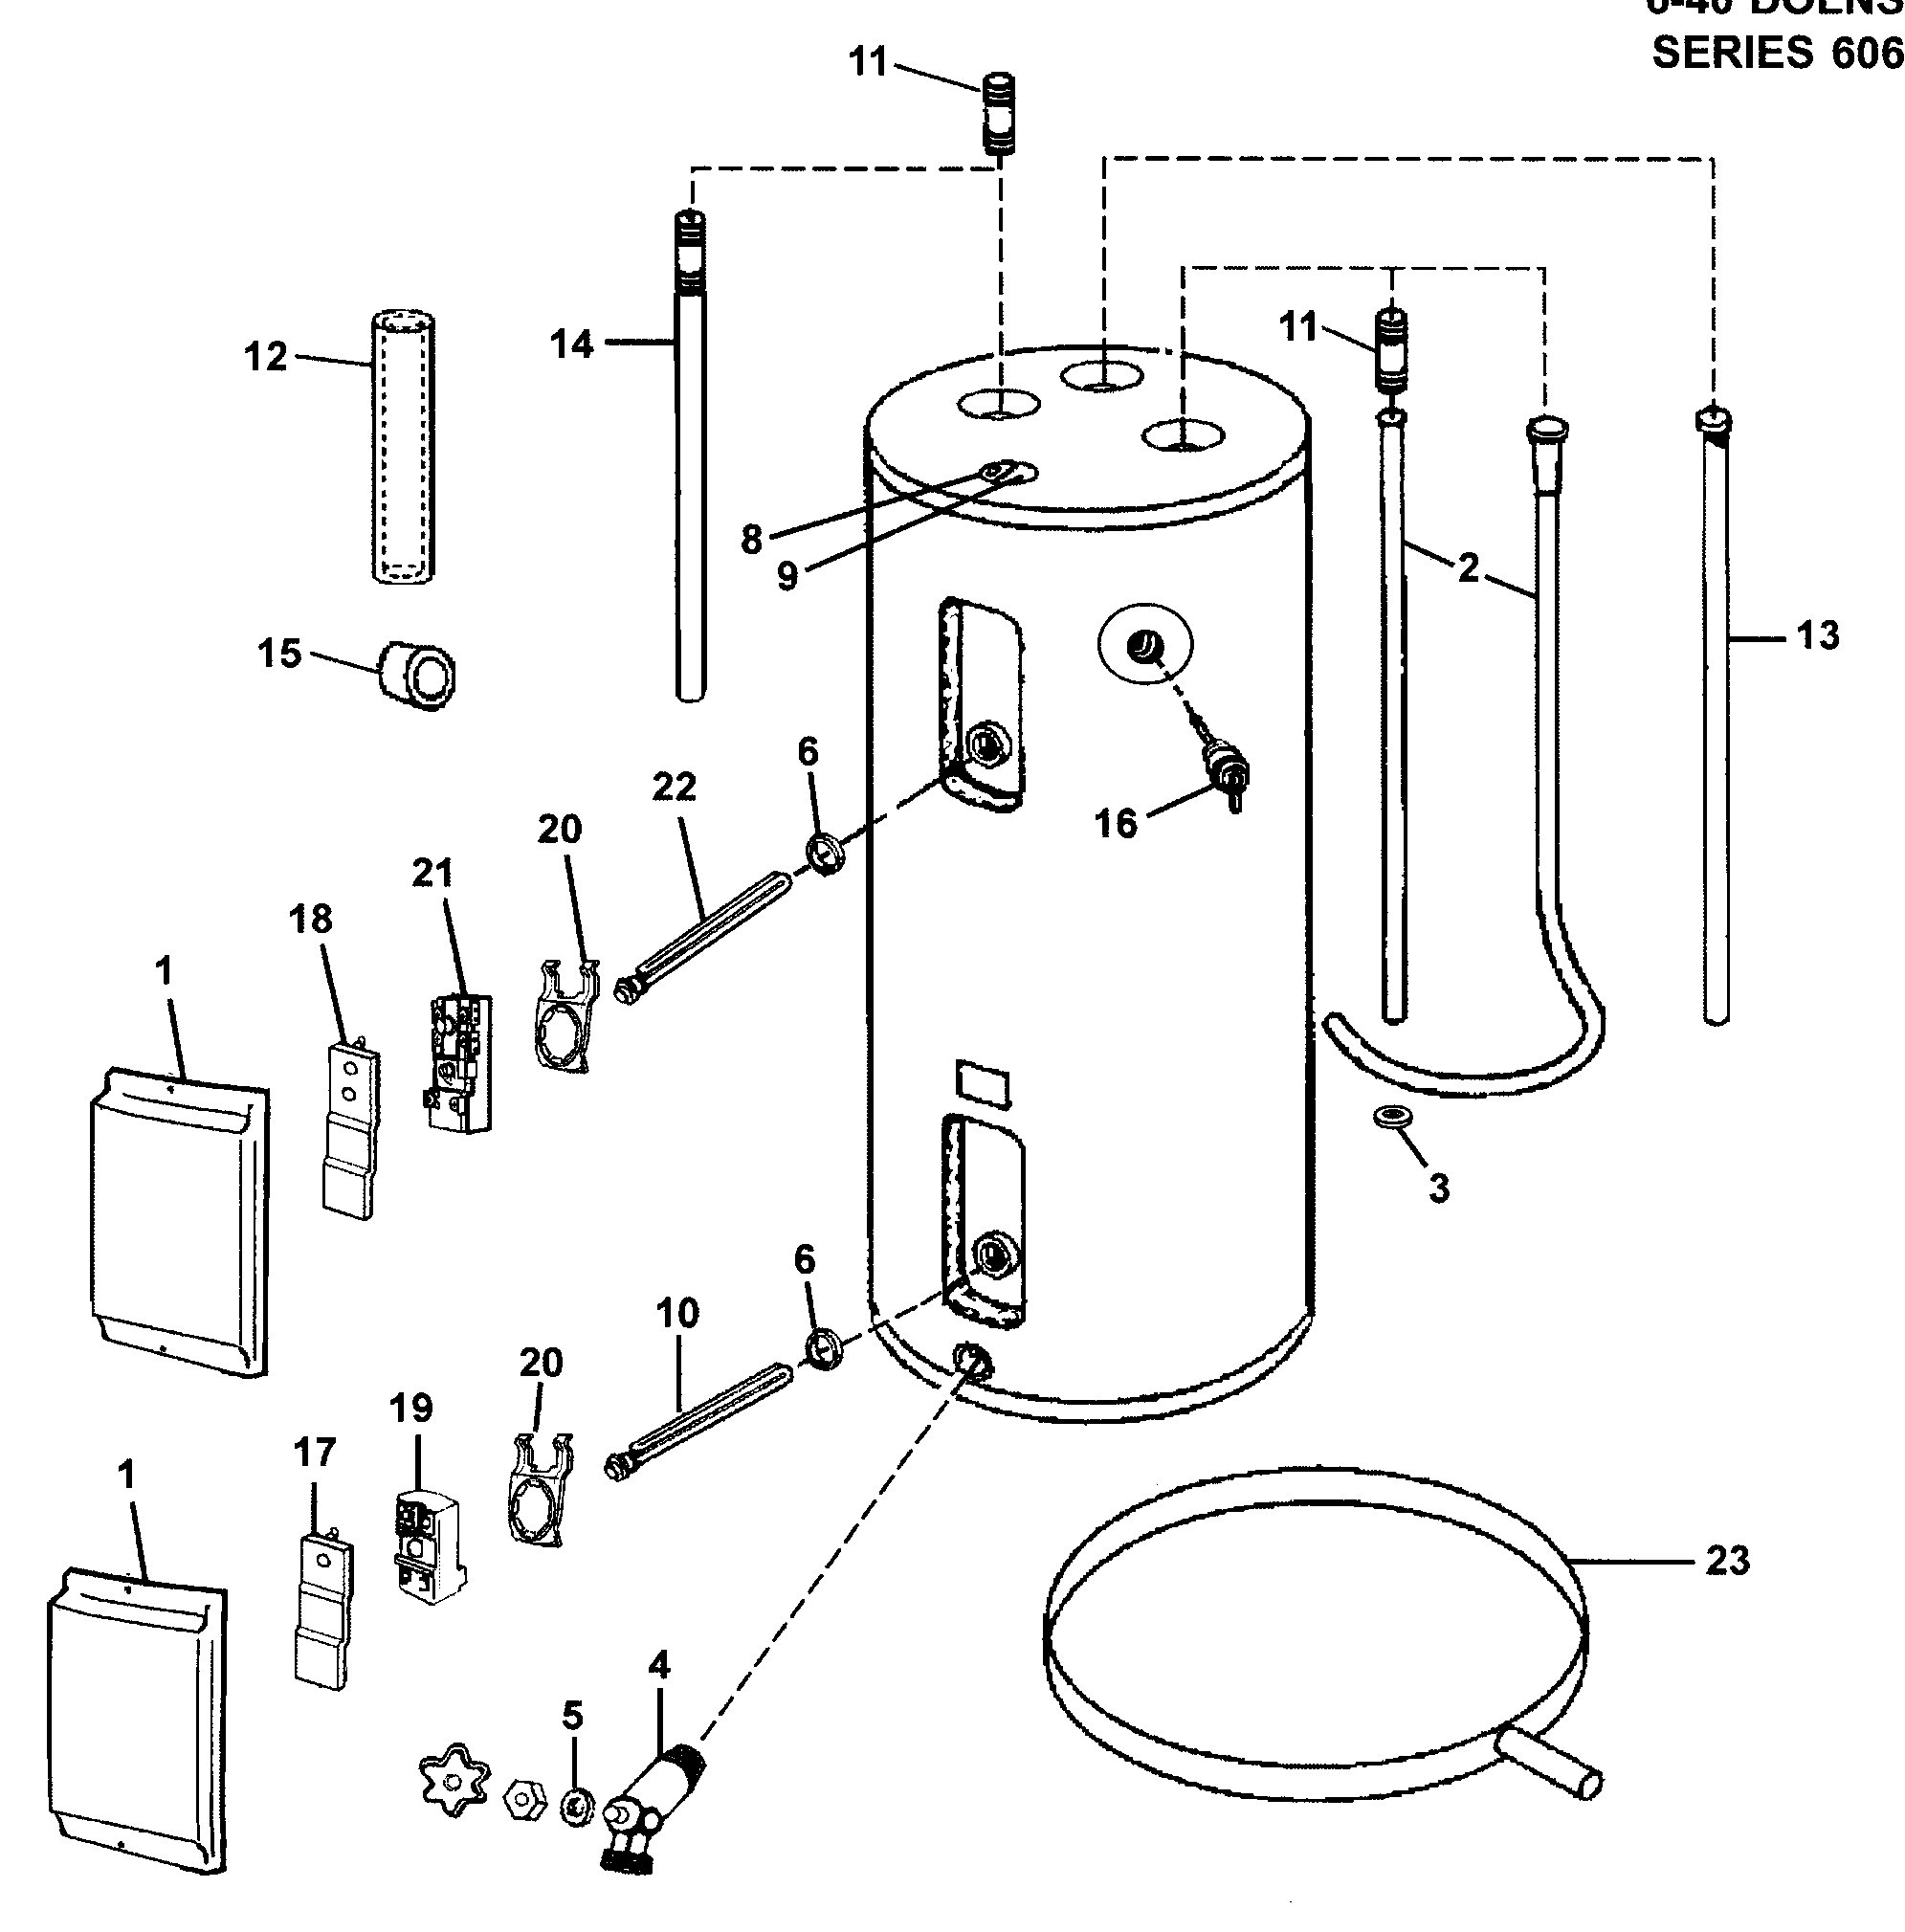 electric water heater wiring diagram Collection-Wiring Diagram Electric Water Heater New Electric Water Heater Parts Diagram 15-p